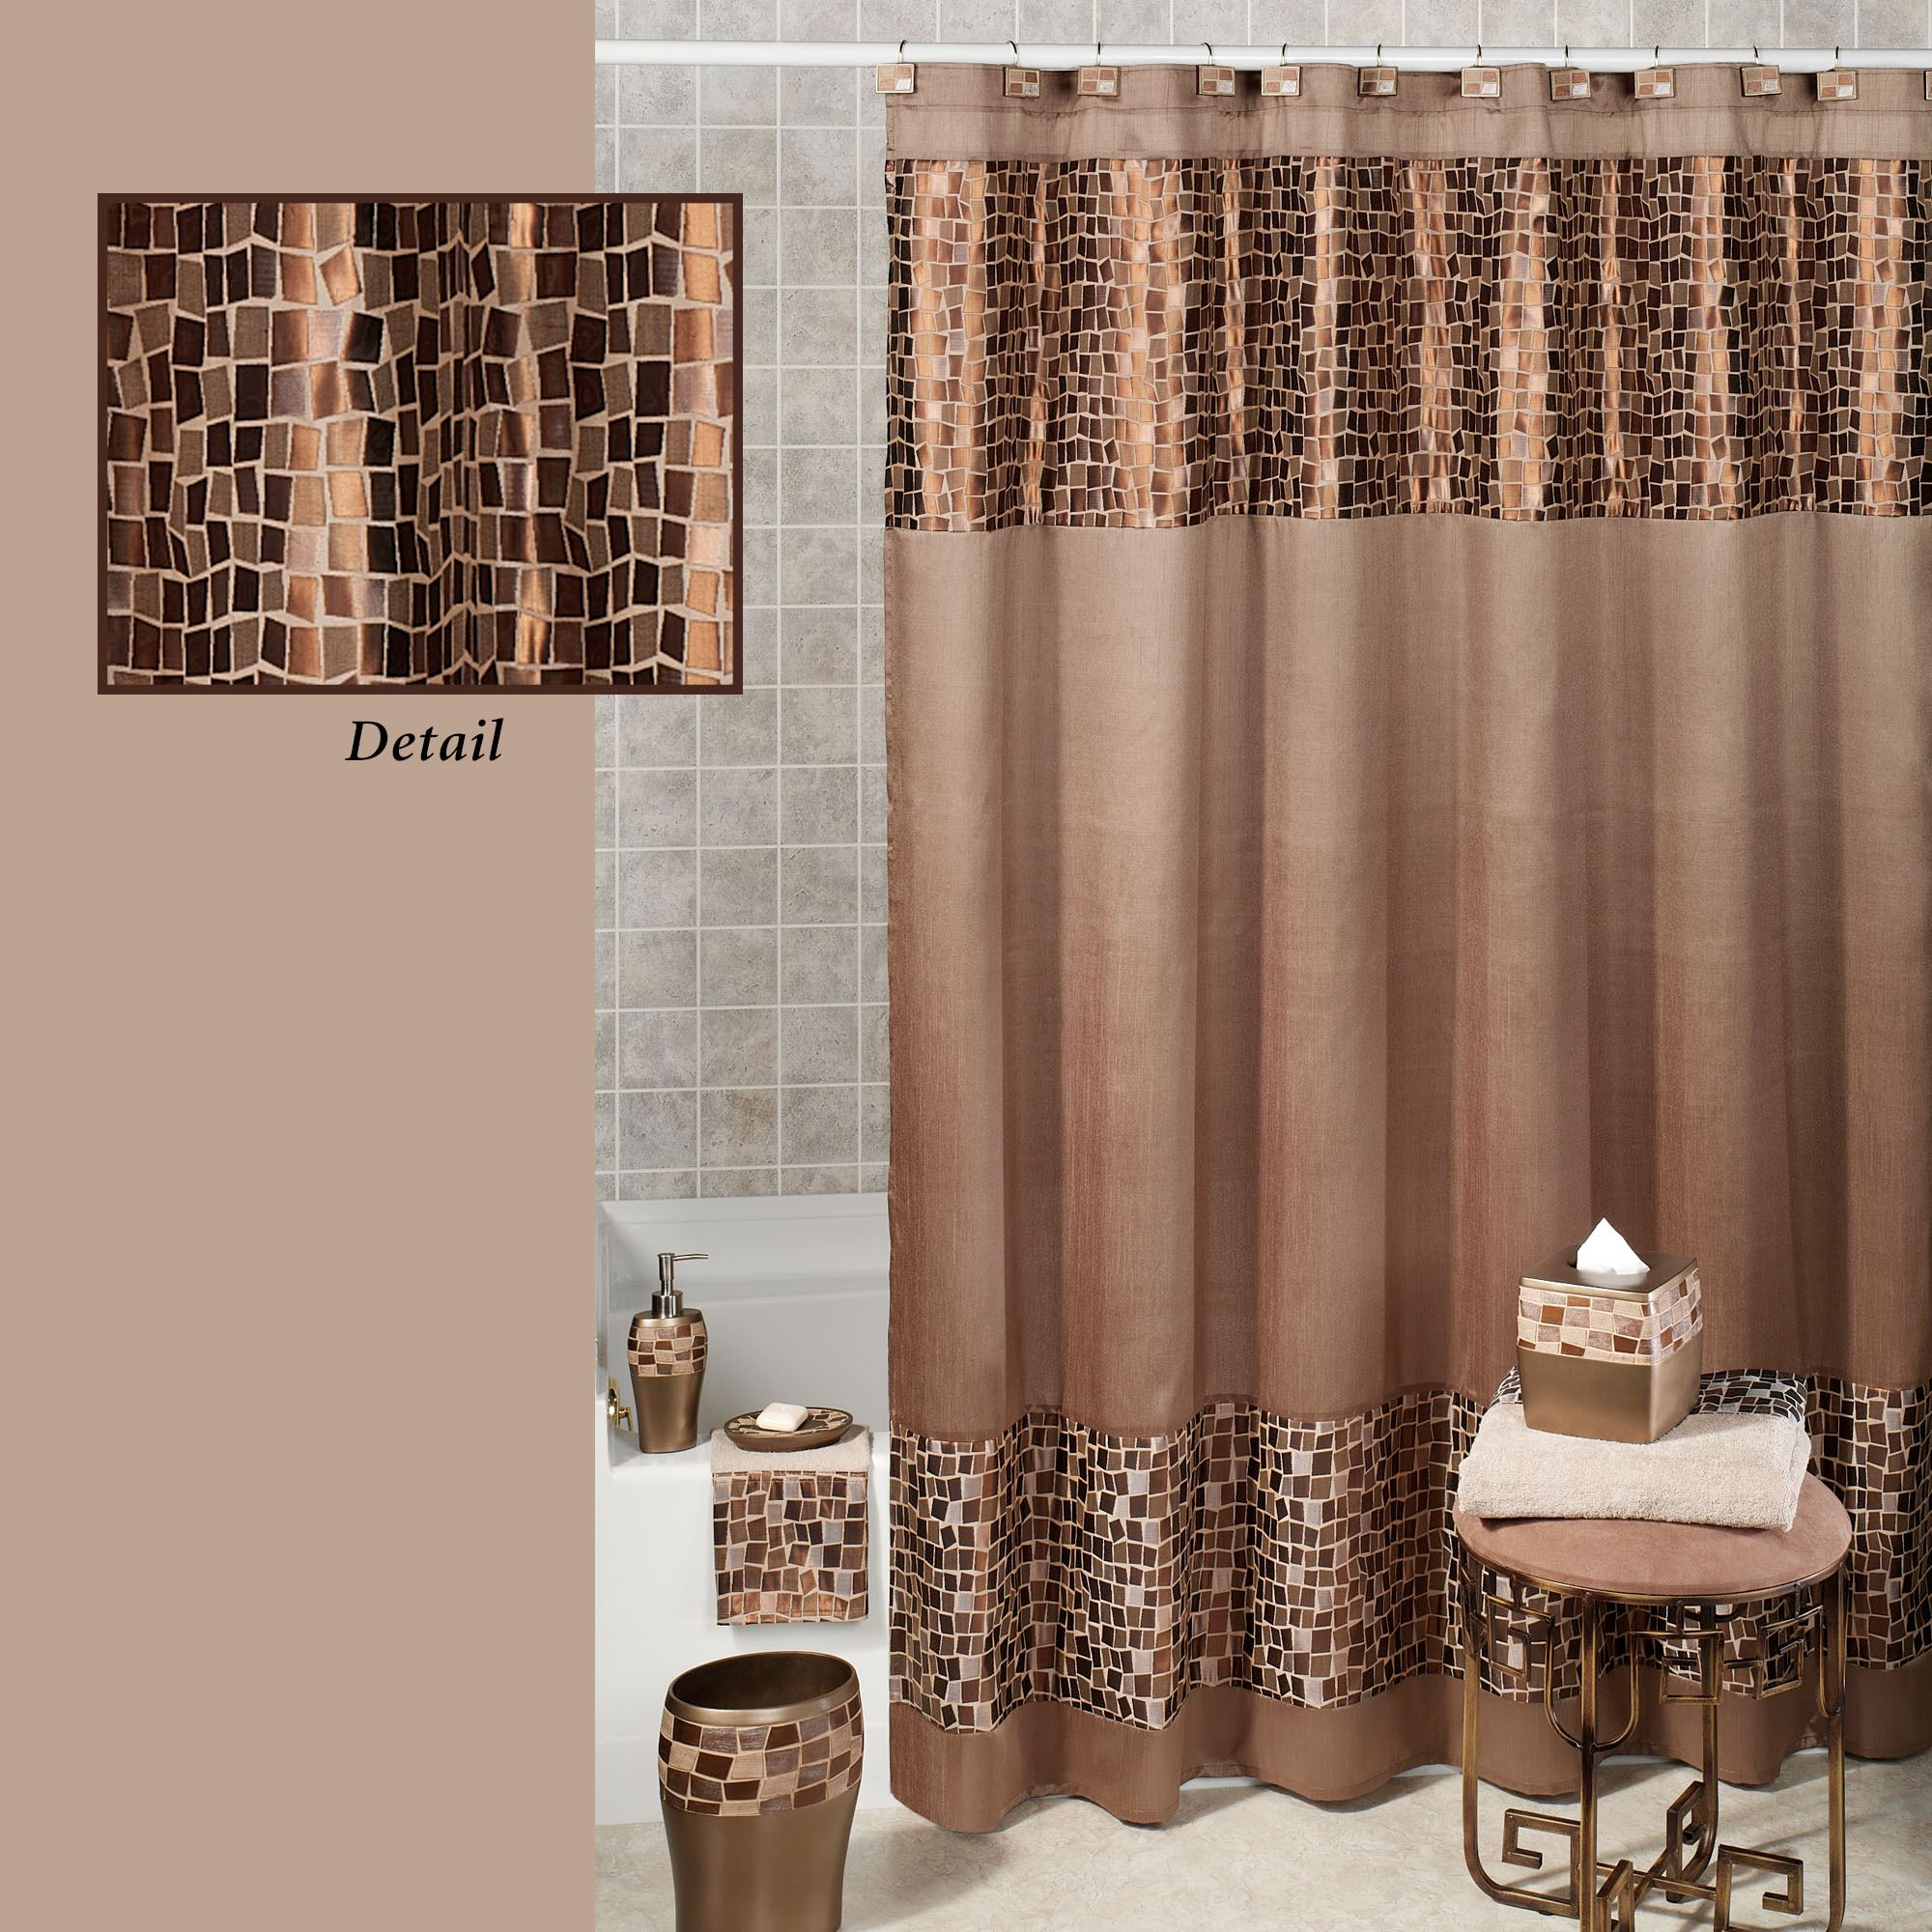 Decorative Kitchen Curtain Sets